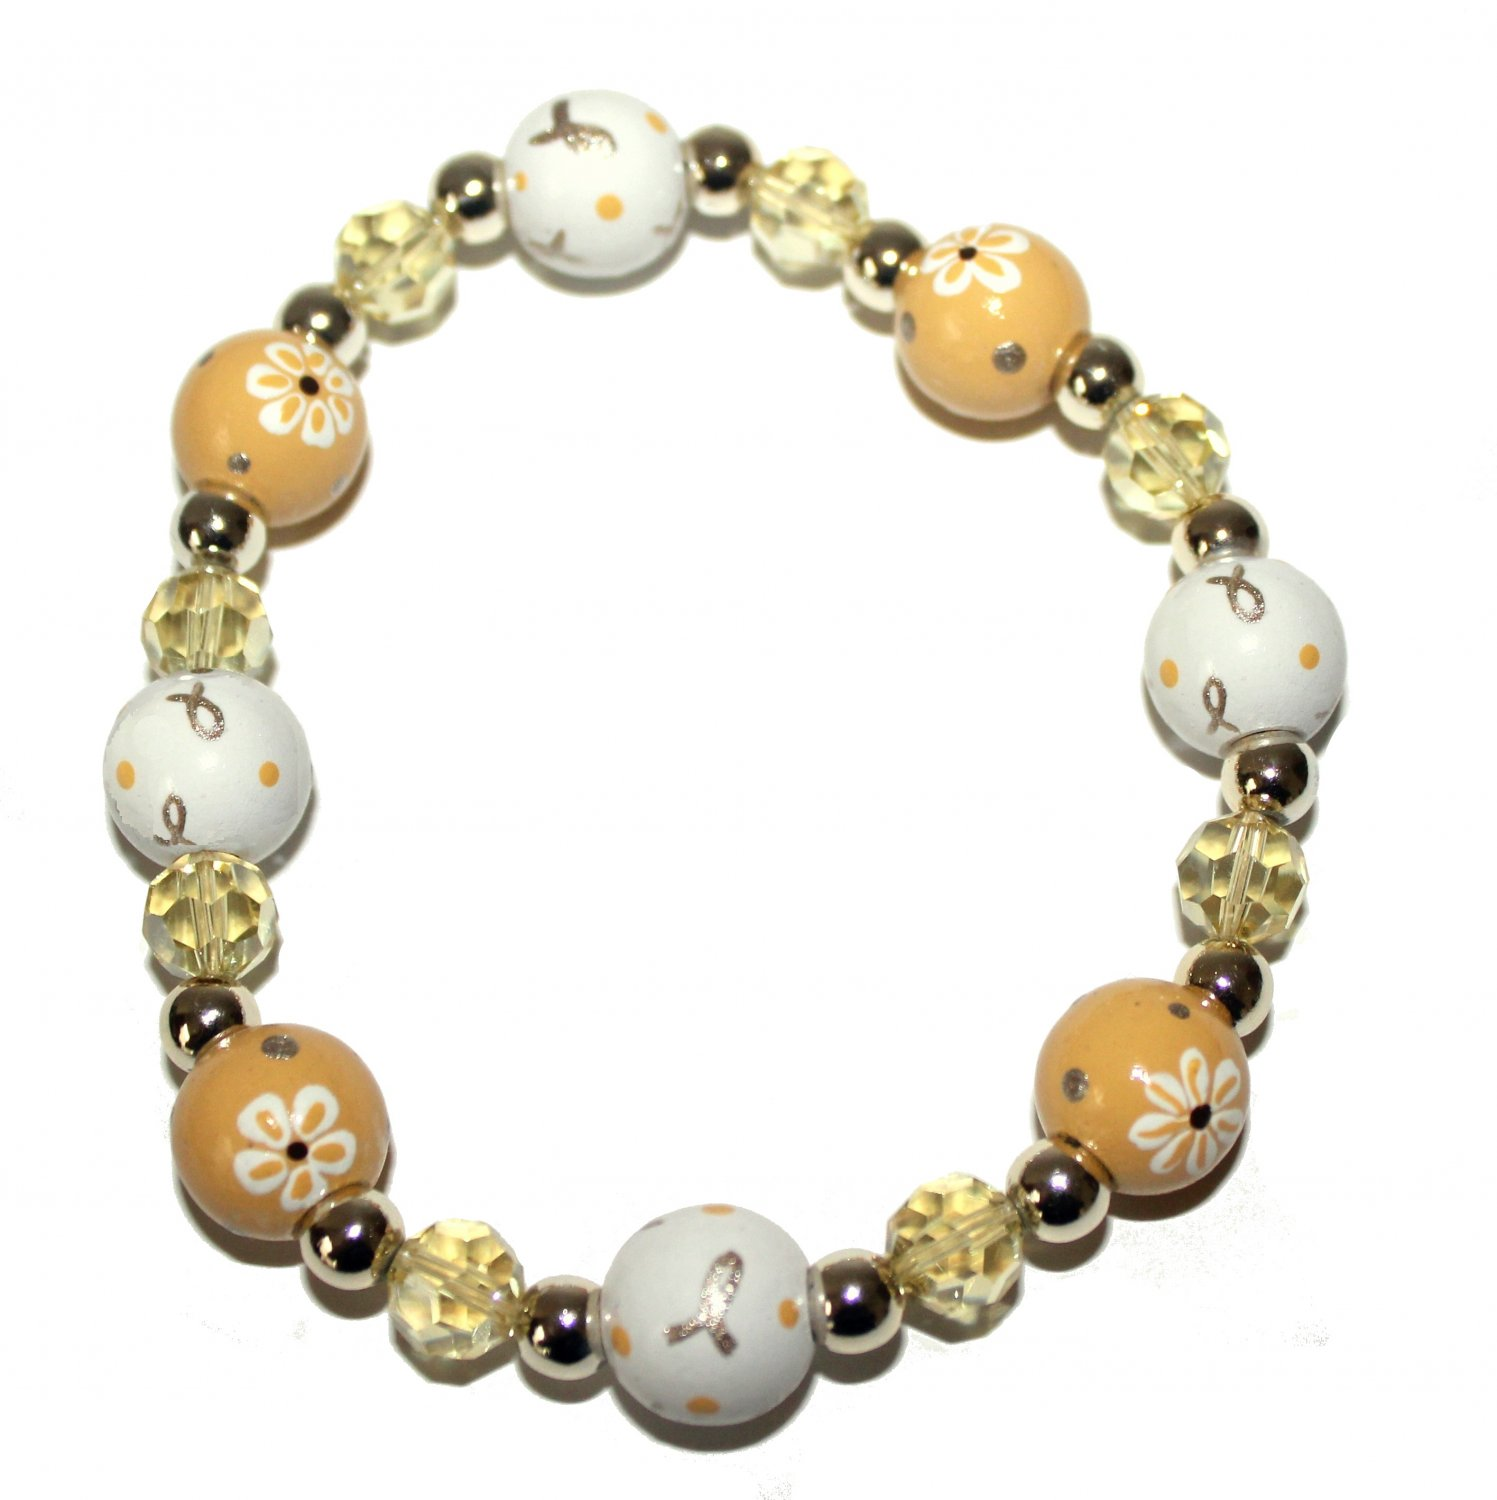 *New*- Hand-Painted Pediatric Cancer Awareness Adult Stretch Bracelet